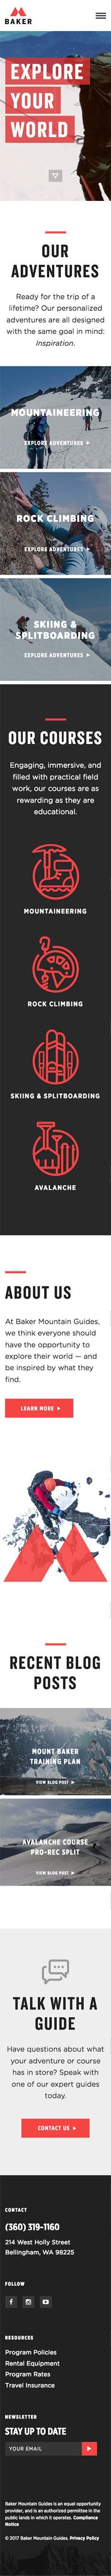 baker website ignyte design agency